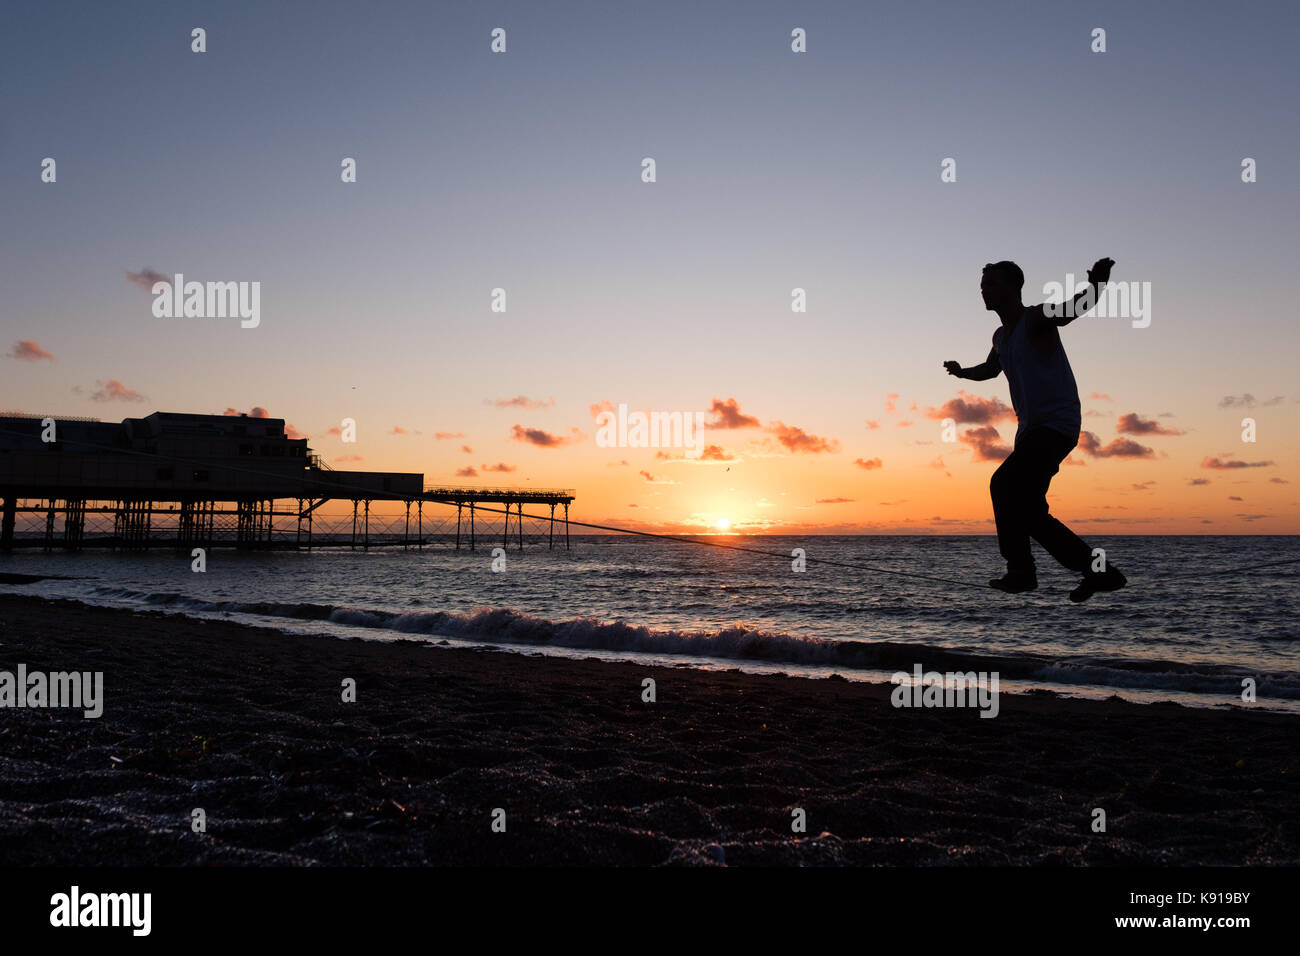 Aberystwyth Wales UK, Thursday 21 September 23017 UK Weather: On the eve of the Autumn Equinox, JESSE STUCK, a 3rd - Stock Image